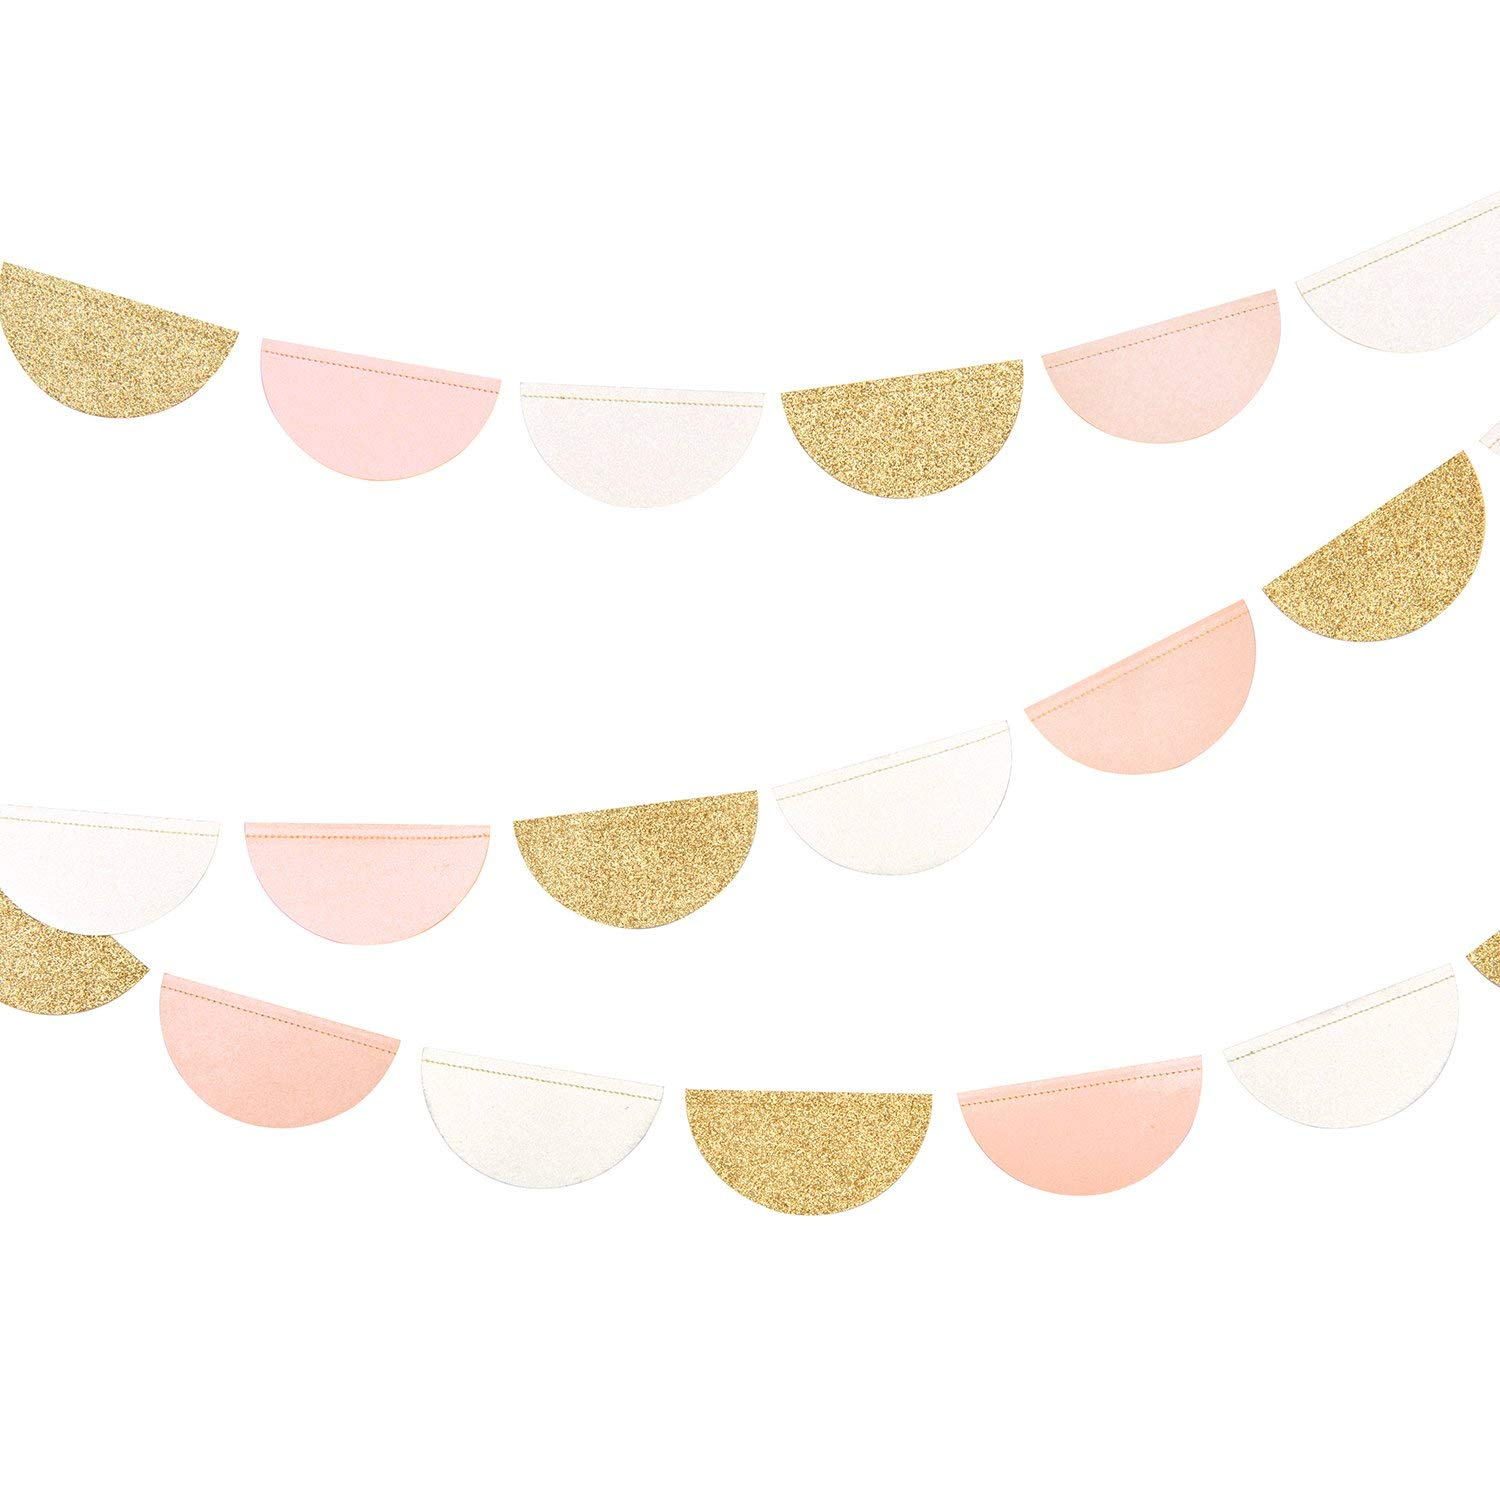 Ling's Moment 30Pcs 9.8Feet Hanging Glitter Party Garland Circle Dots Paper Banner Backdrop for Wedding, Bridal Showers, Birthday Party, Baby Shower, Event & Party Decor (Gold, Pink, White)